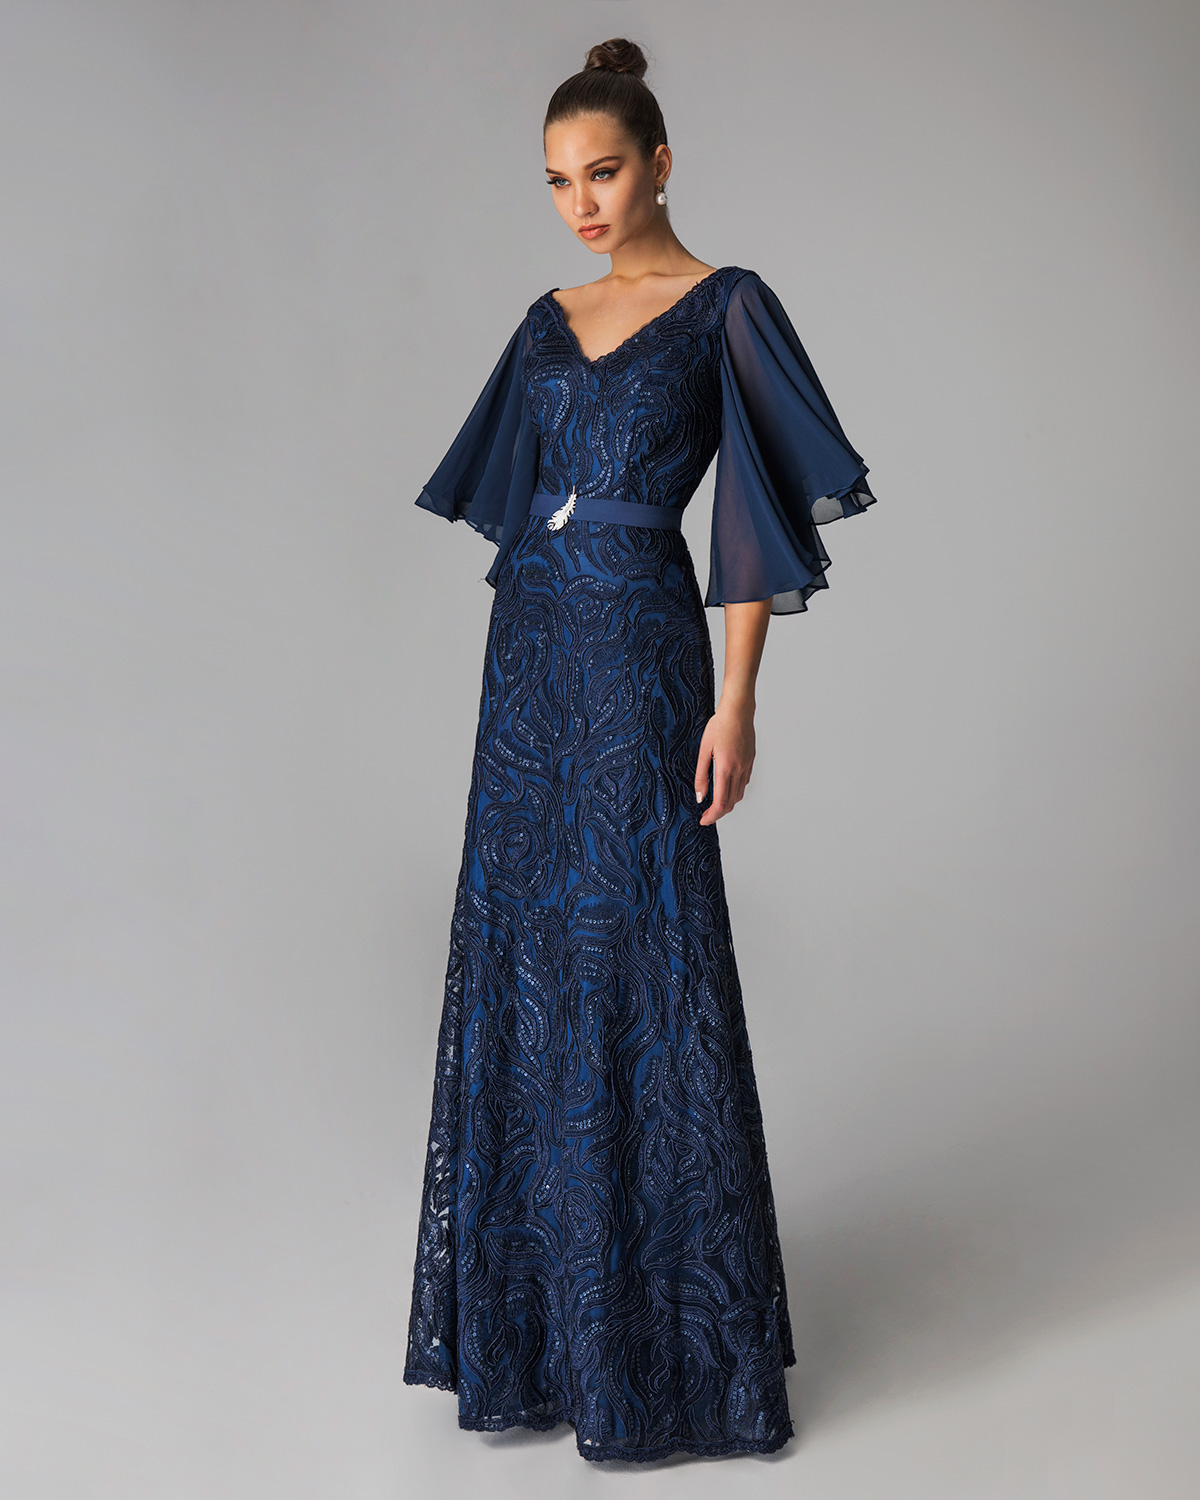 Classic Dresses / Long evening  lace dress for mother of the bride with sleeves of chiffon